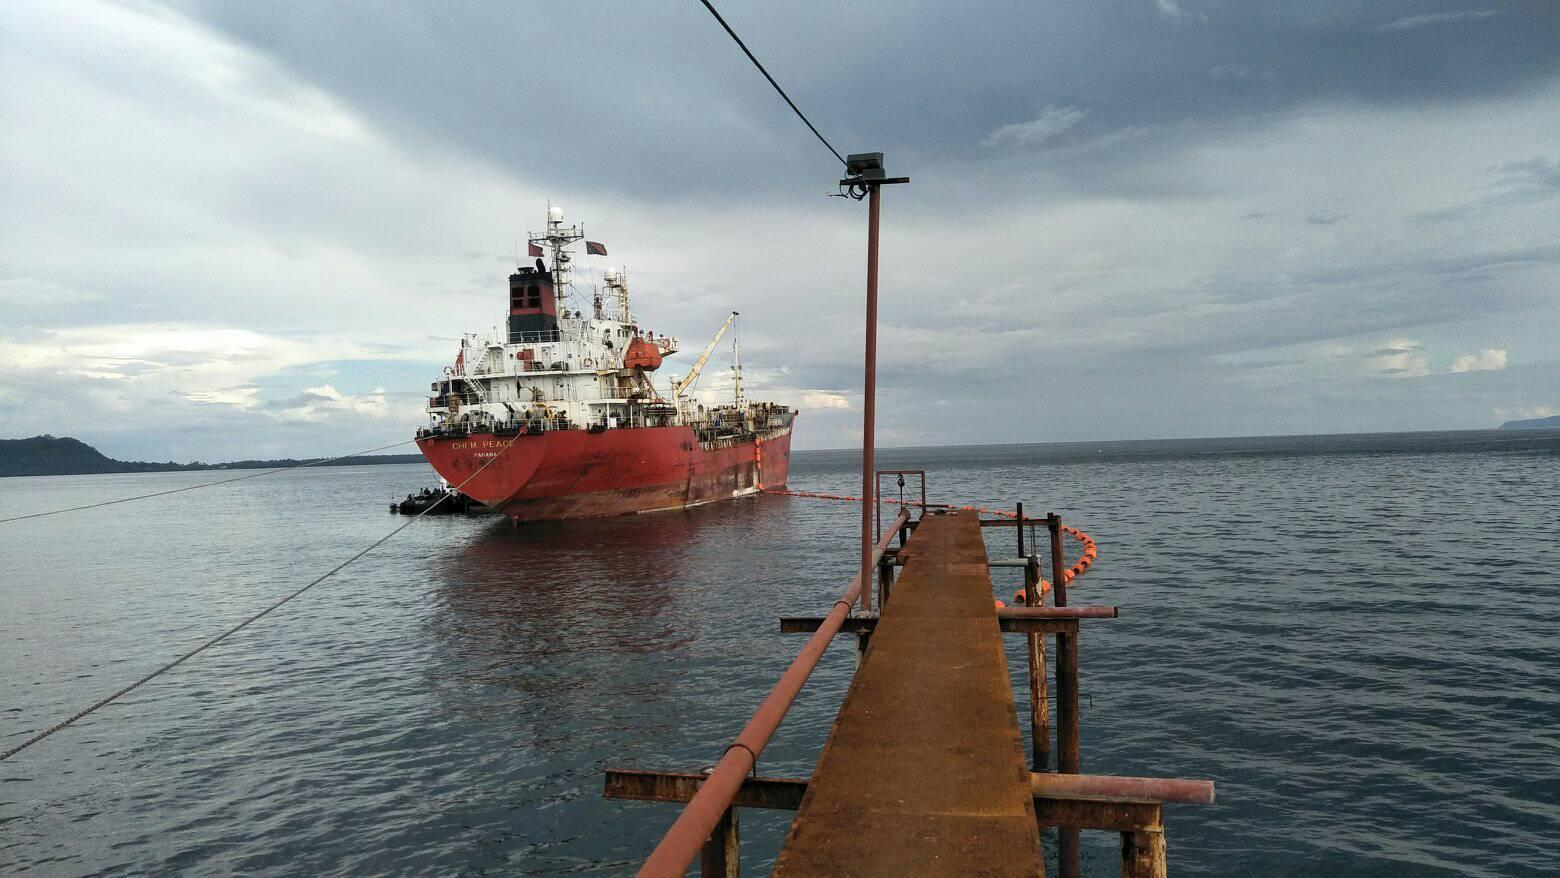 The Chem Peace moored at a jetty